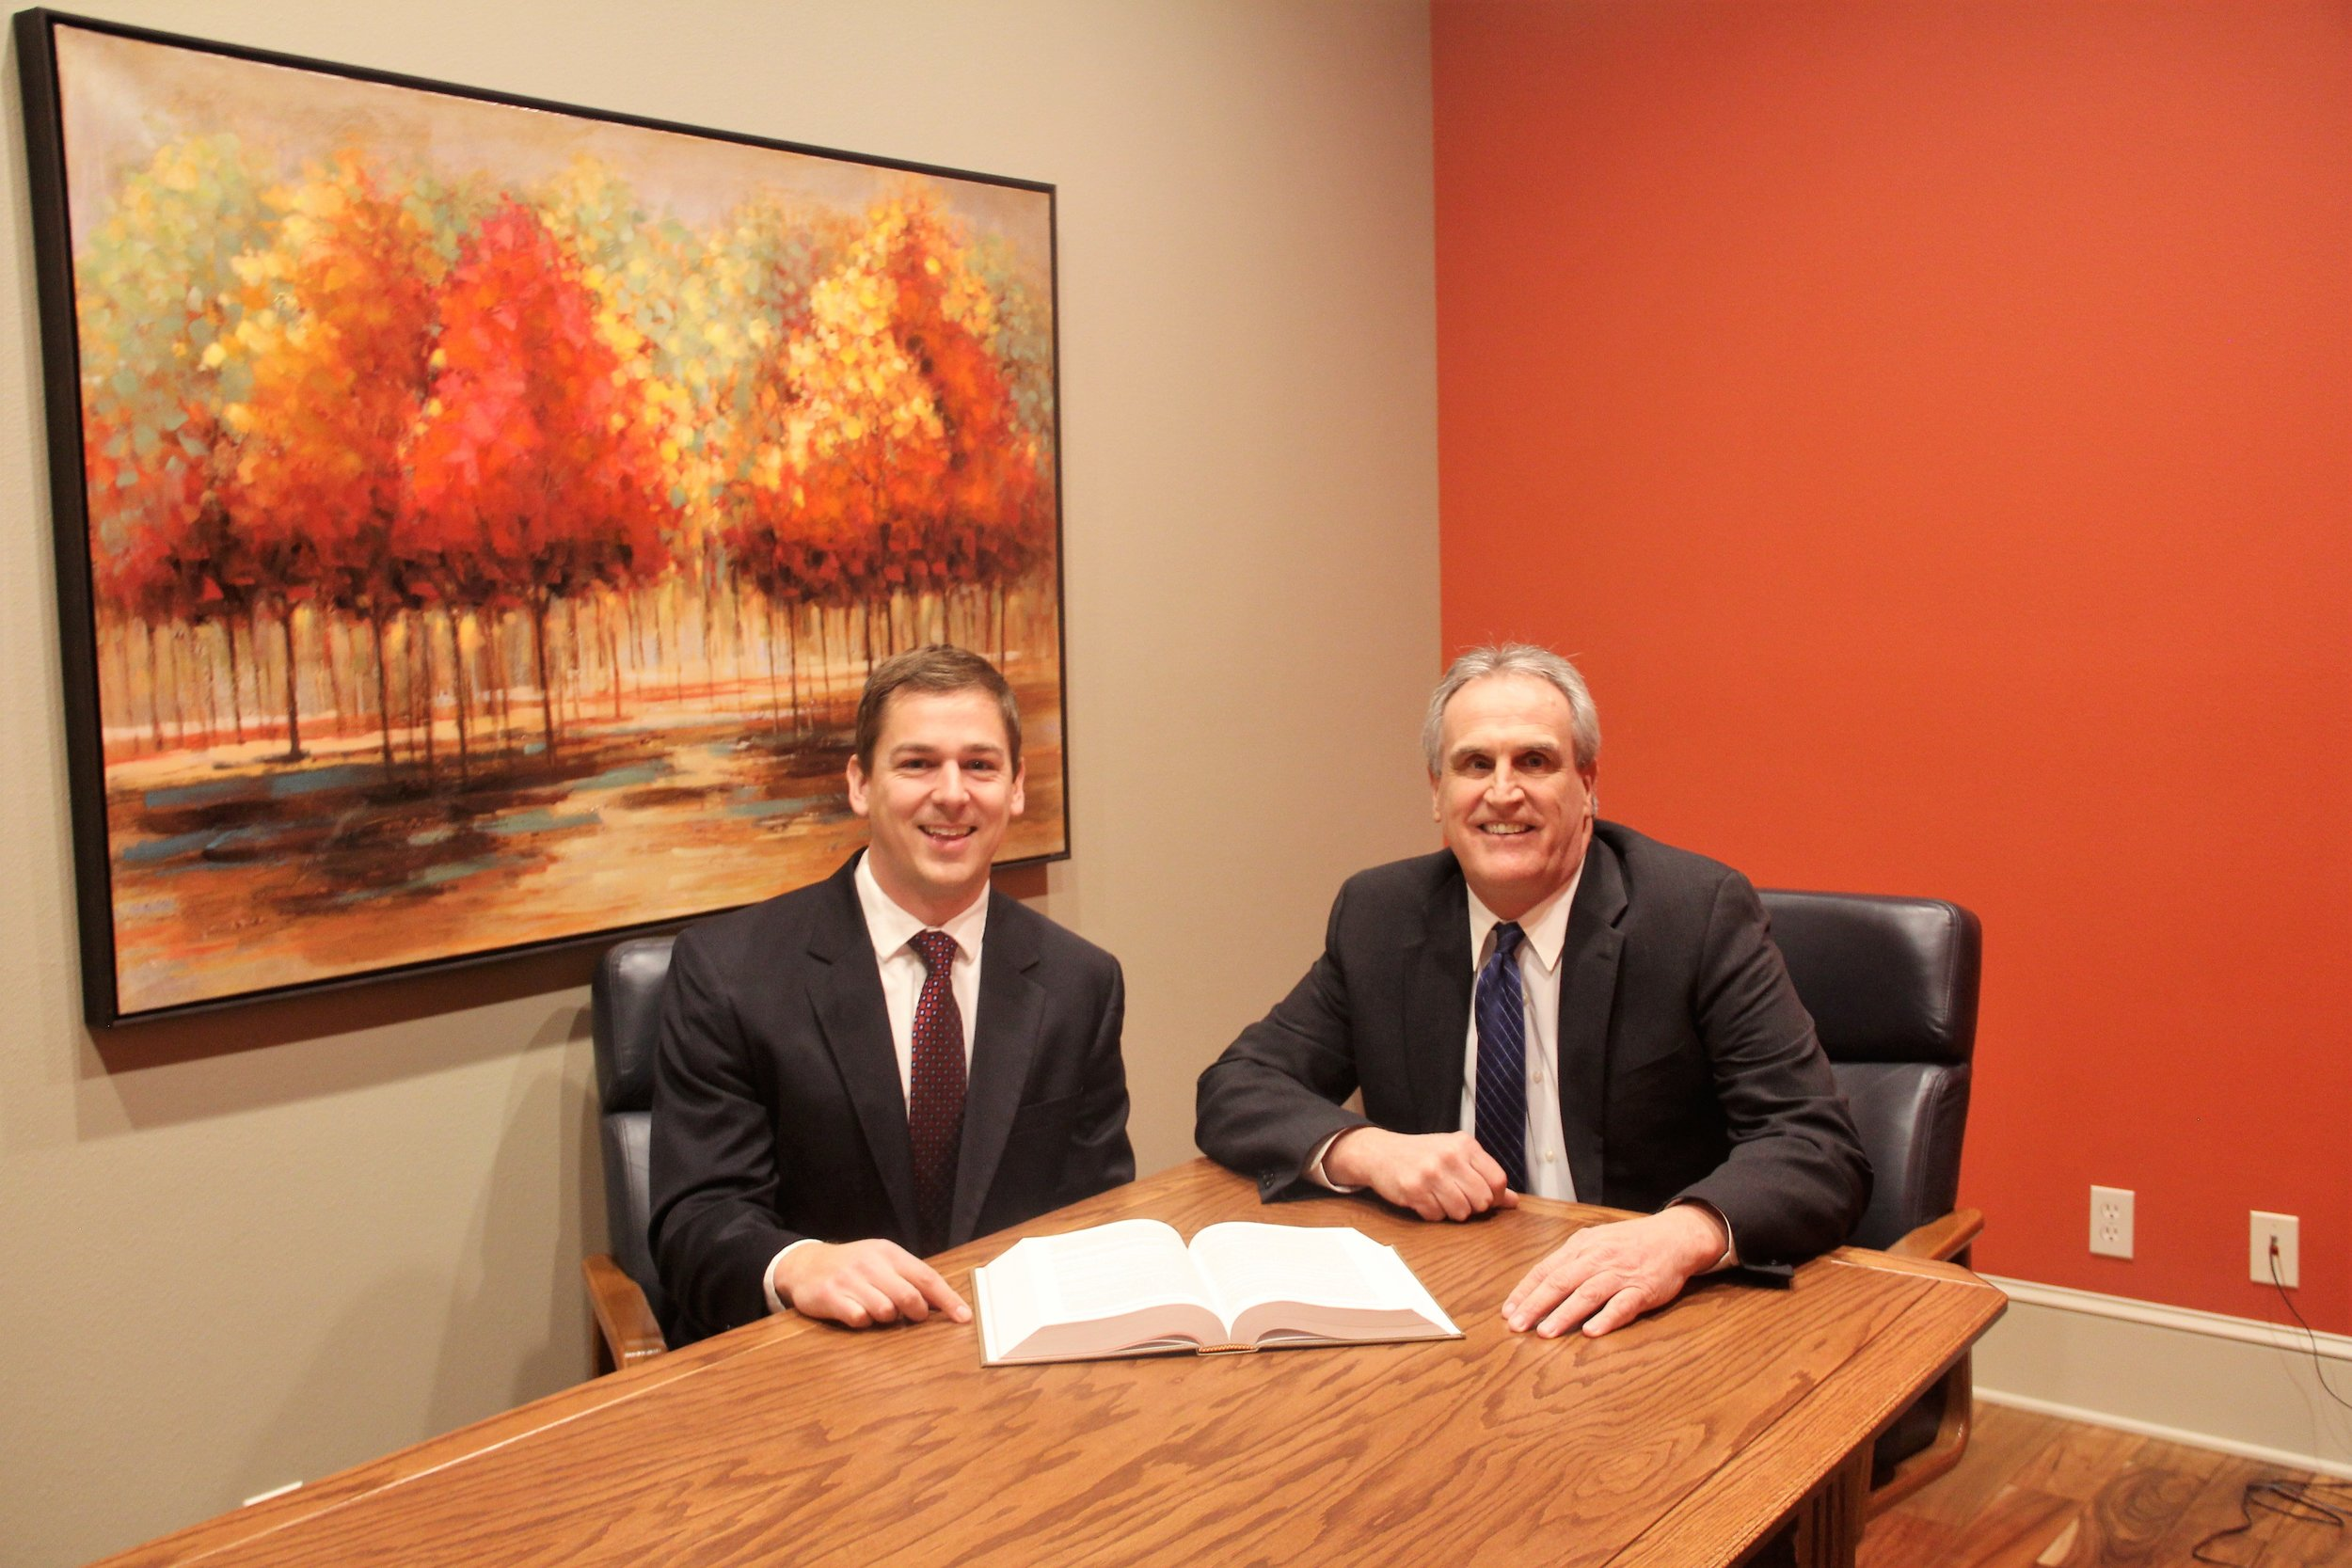 Estate Planning Attorneys and Personal Injury Lawyers, Ryan A. Kehm and Mark R. Crimmins